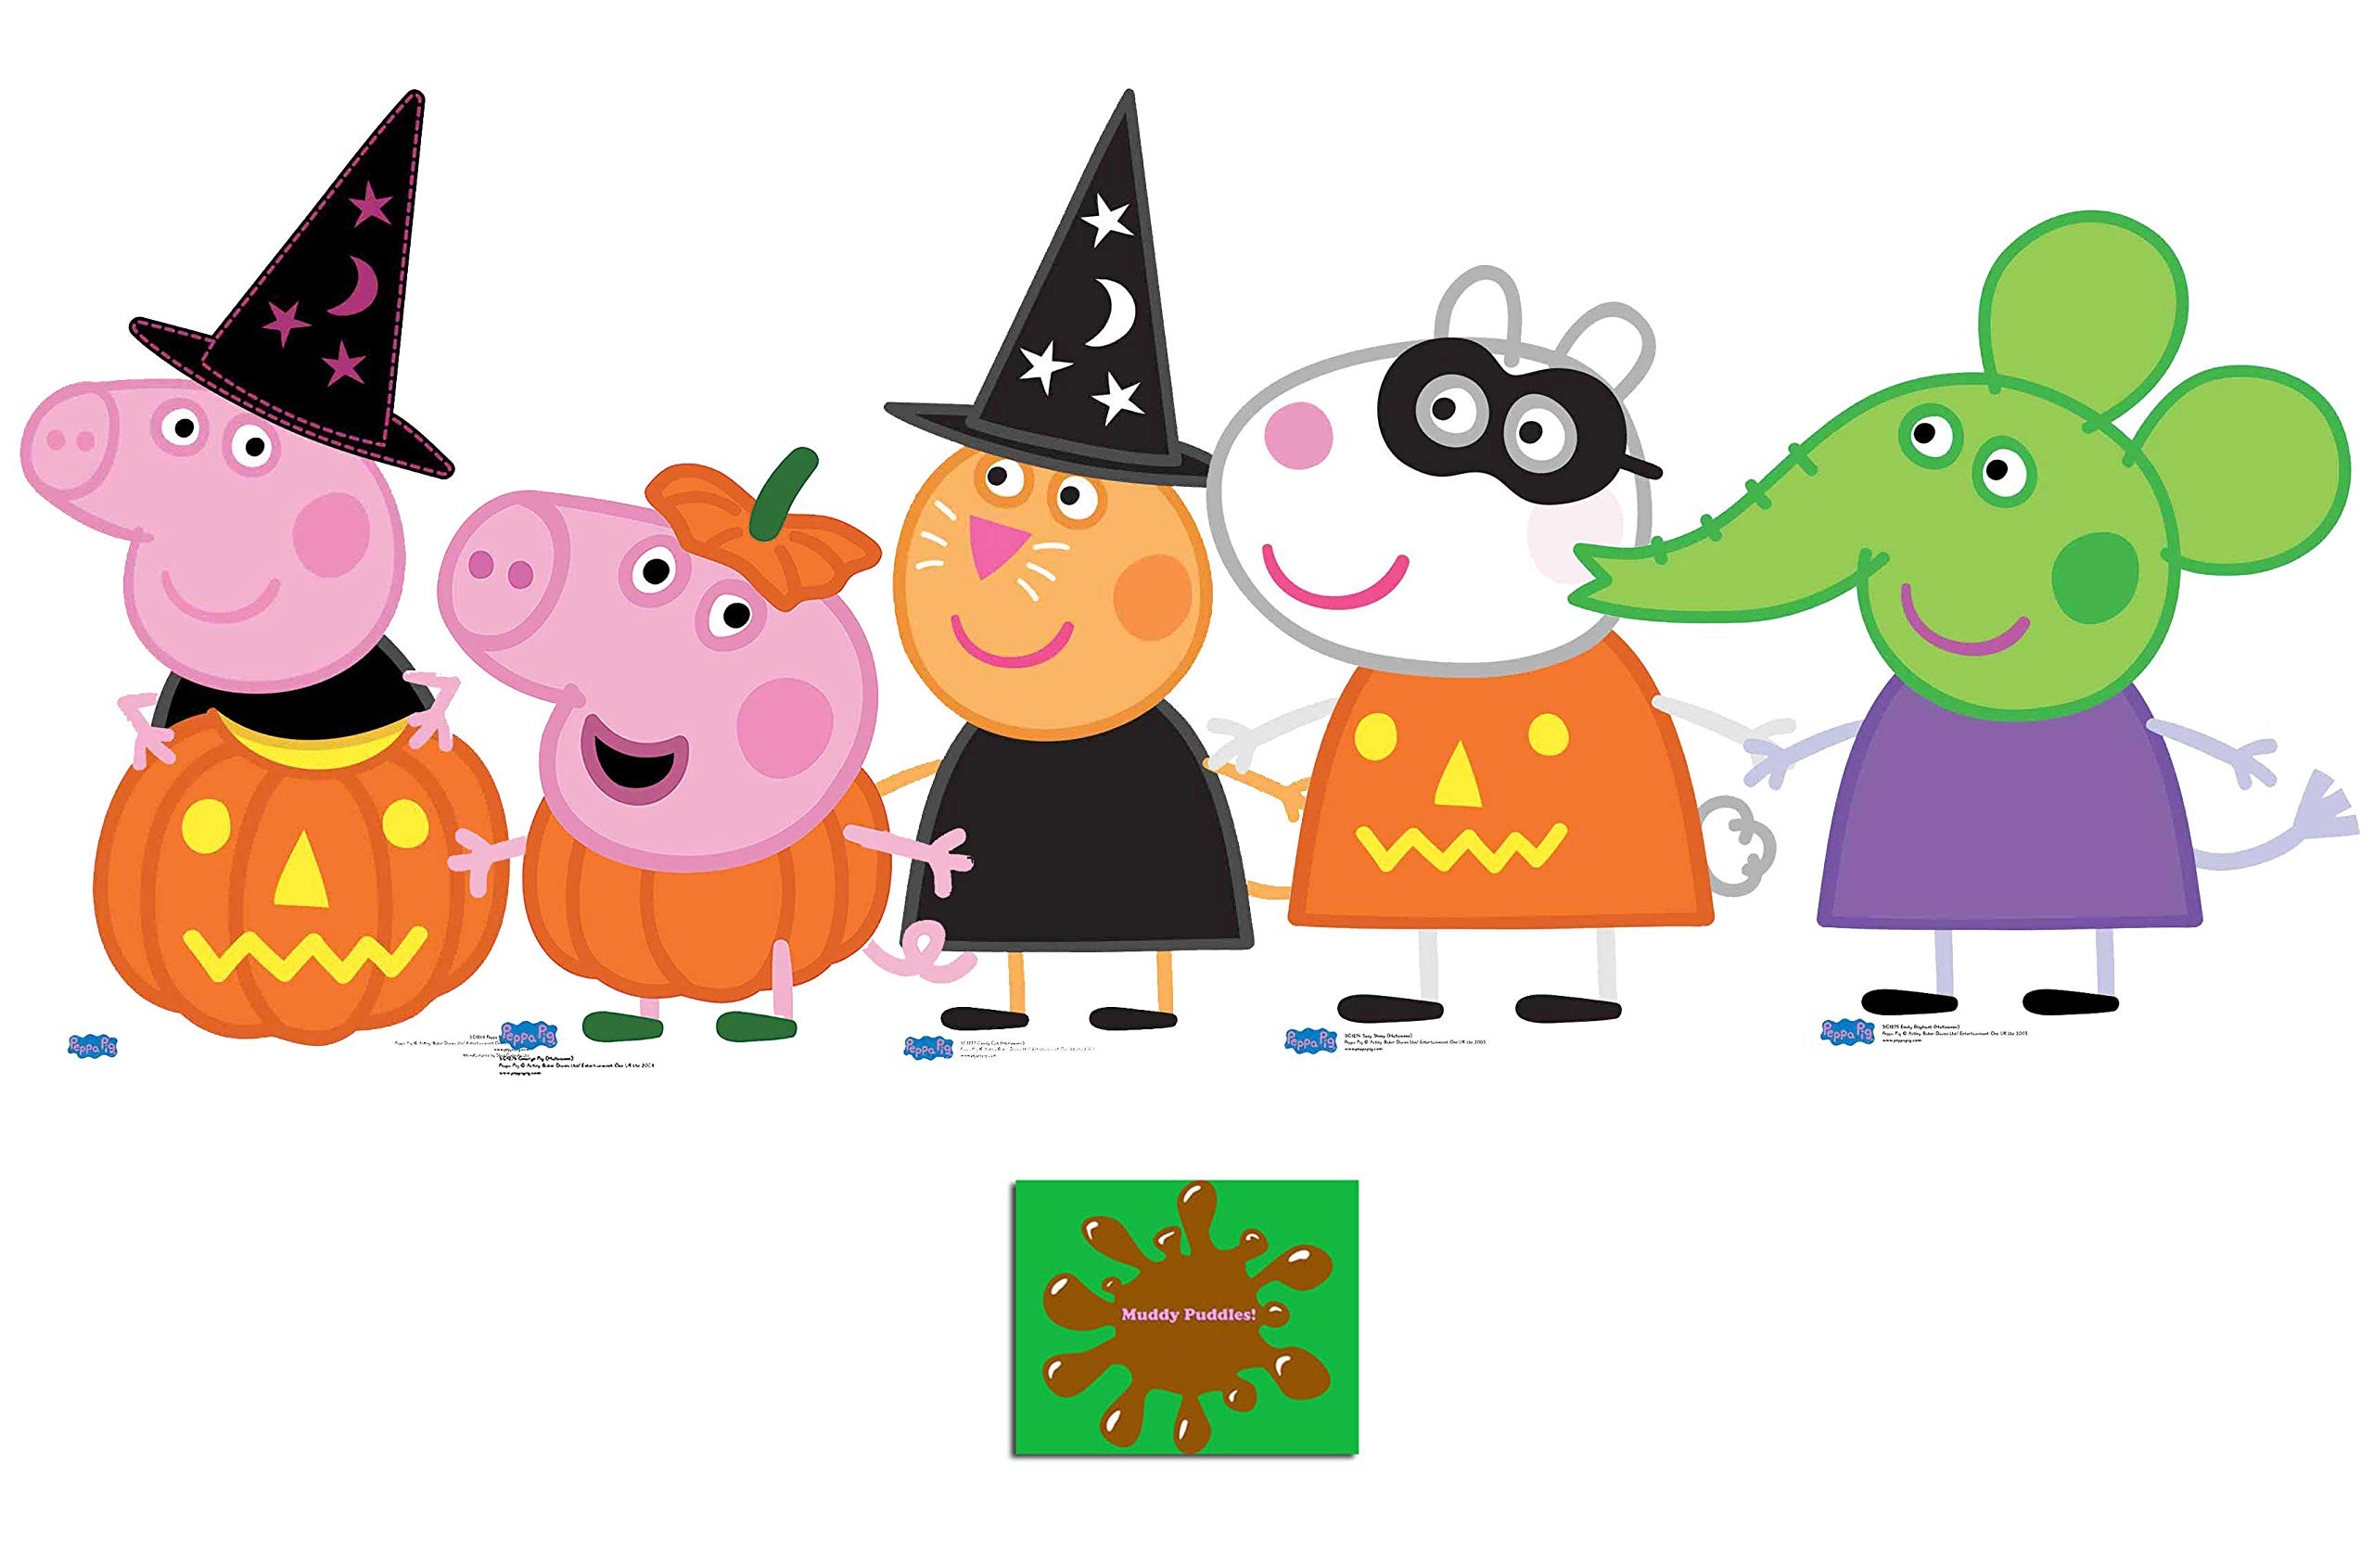 Peppa Pig Halloween Theme Collection with Suzy, Emily, George, Peppa and Candy Set of 5 Cardboard Cutouts Fan Pack, Includes 8x10 Star Photo